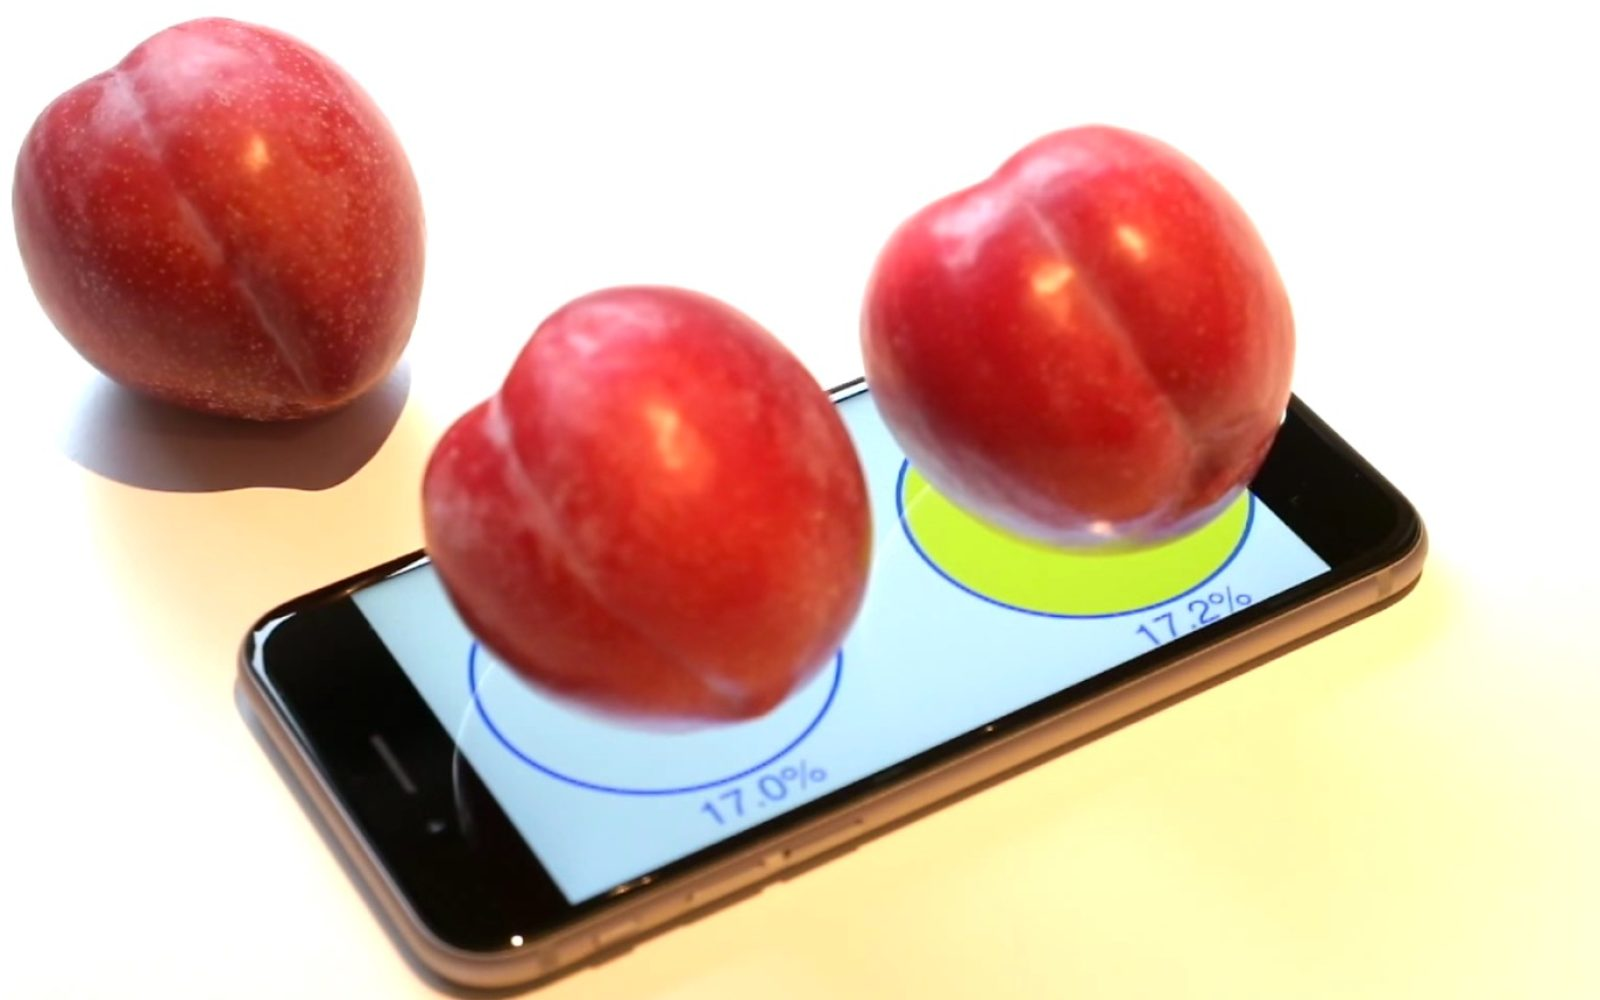 Video demonstrates using 3D touch screen iPhone 6s to weigh objects, opens up new use cases